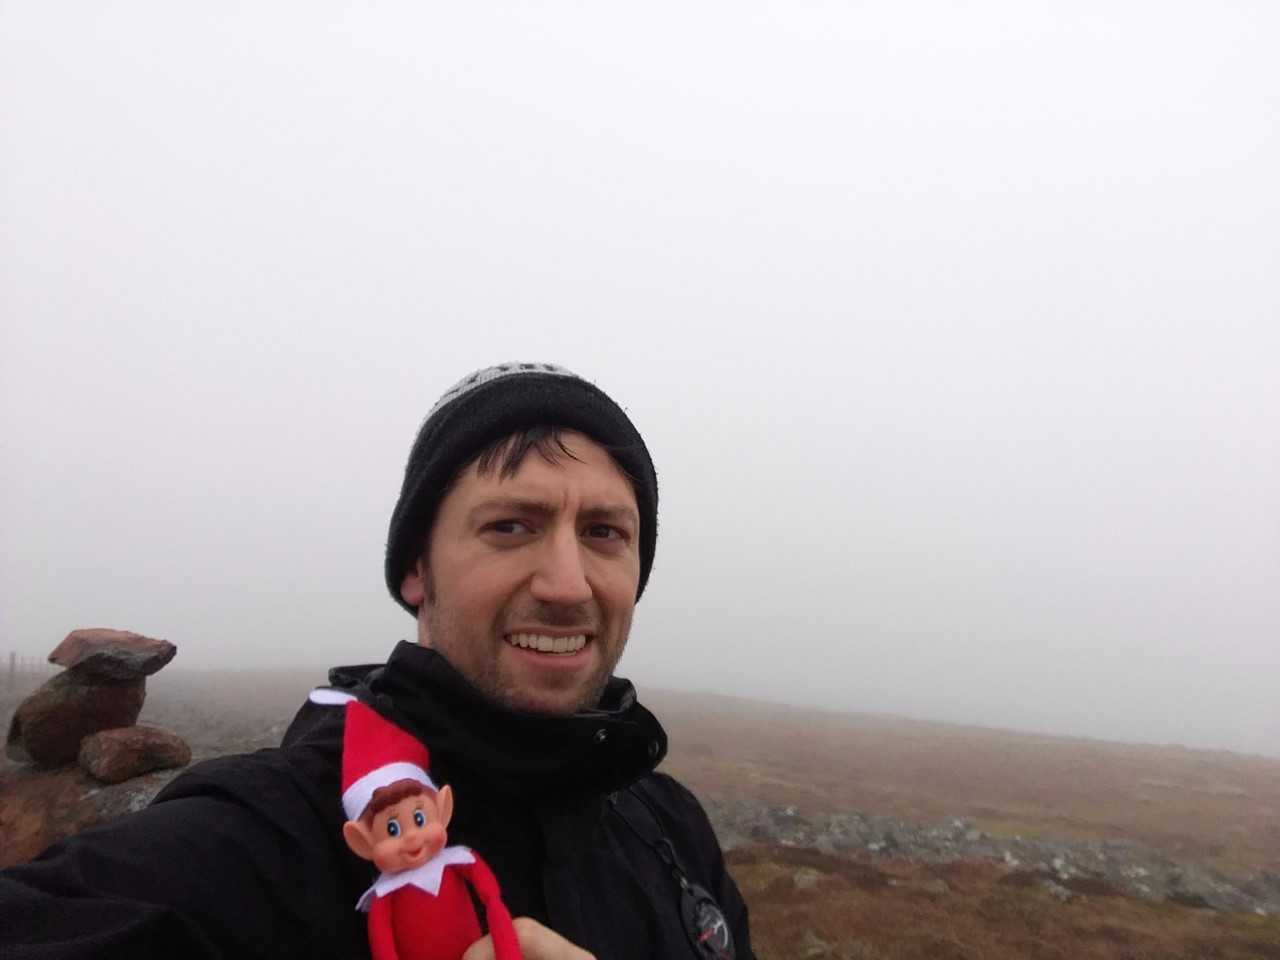 headshot of man holding little red elf with mountains in the background